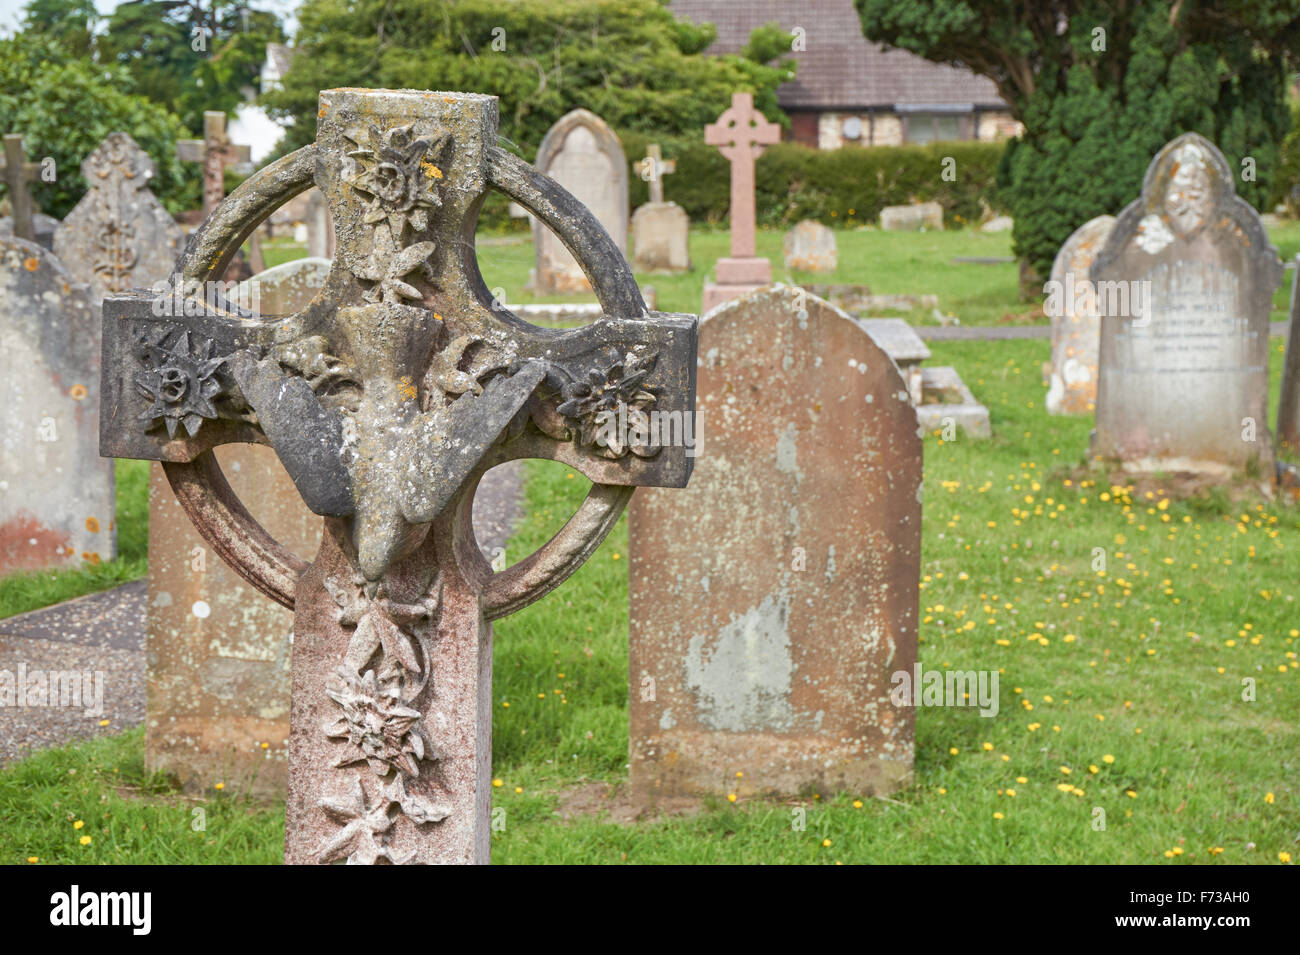 Saint Cosmas and Saint Damian Church cemetery in the village of Keymer, West Sussex England United Kingdom UK - Stock Image